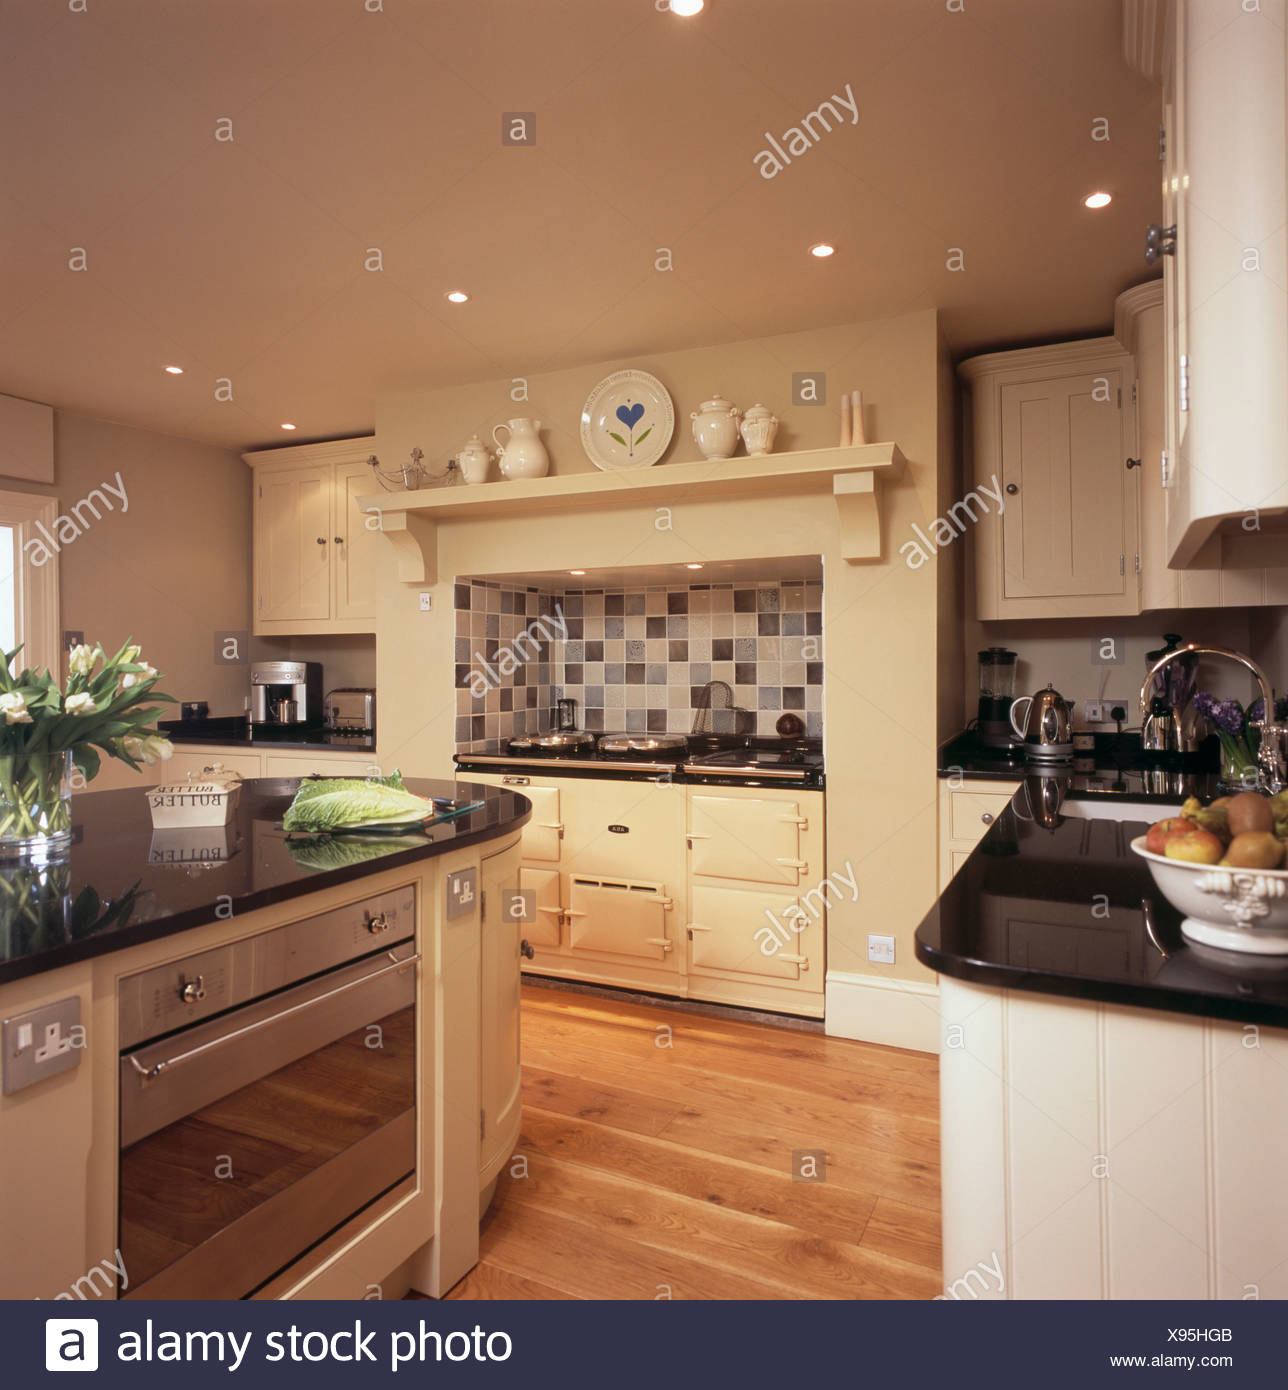 Oven In Island Unit Cream Aga Oven In Country Stock Photos And Cream Aga Oven In